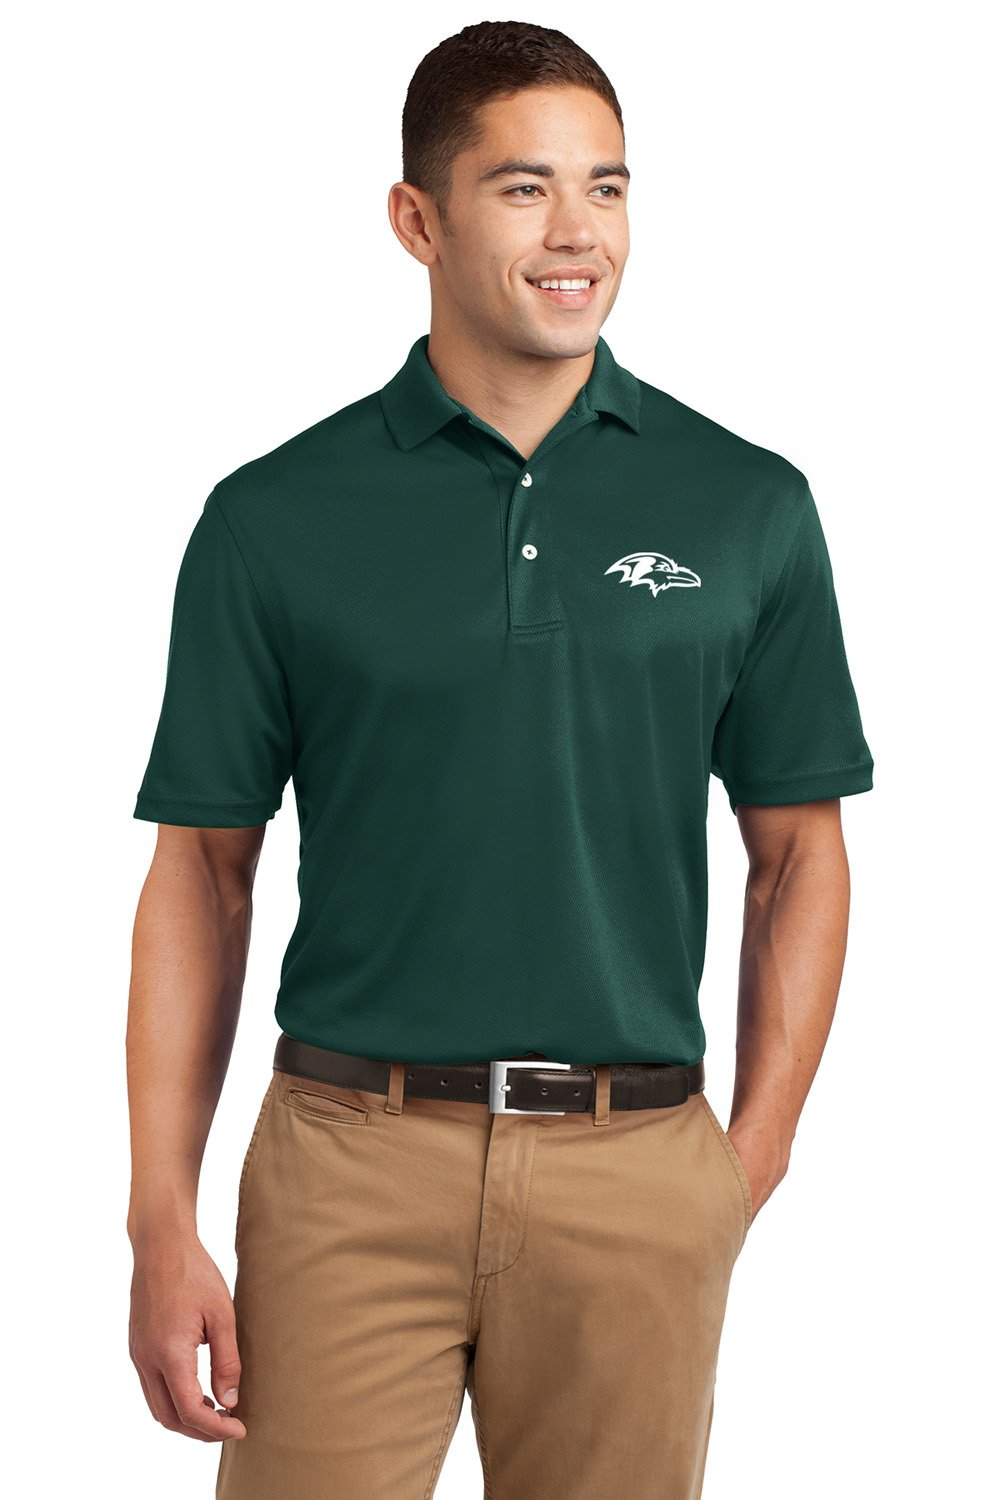 Sport-Tek Dri-Mesh Men's Polo Shirt- 6 Qty - Promotional Product - Imprinted With Your Company Name, Logo or Message by Promo Direct